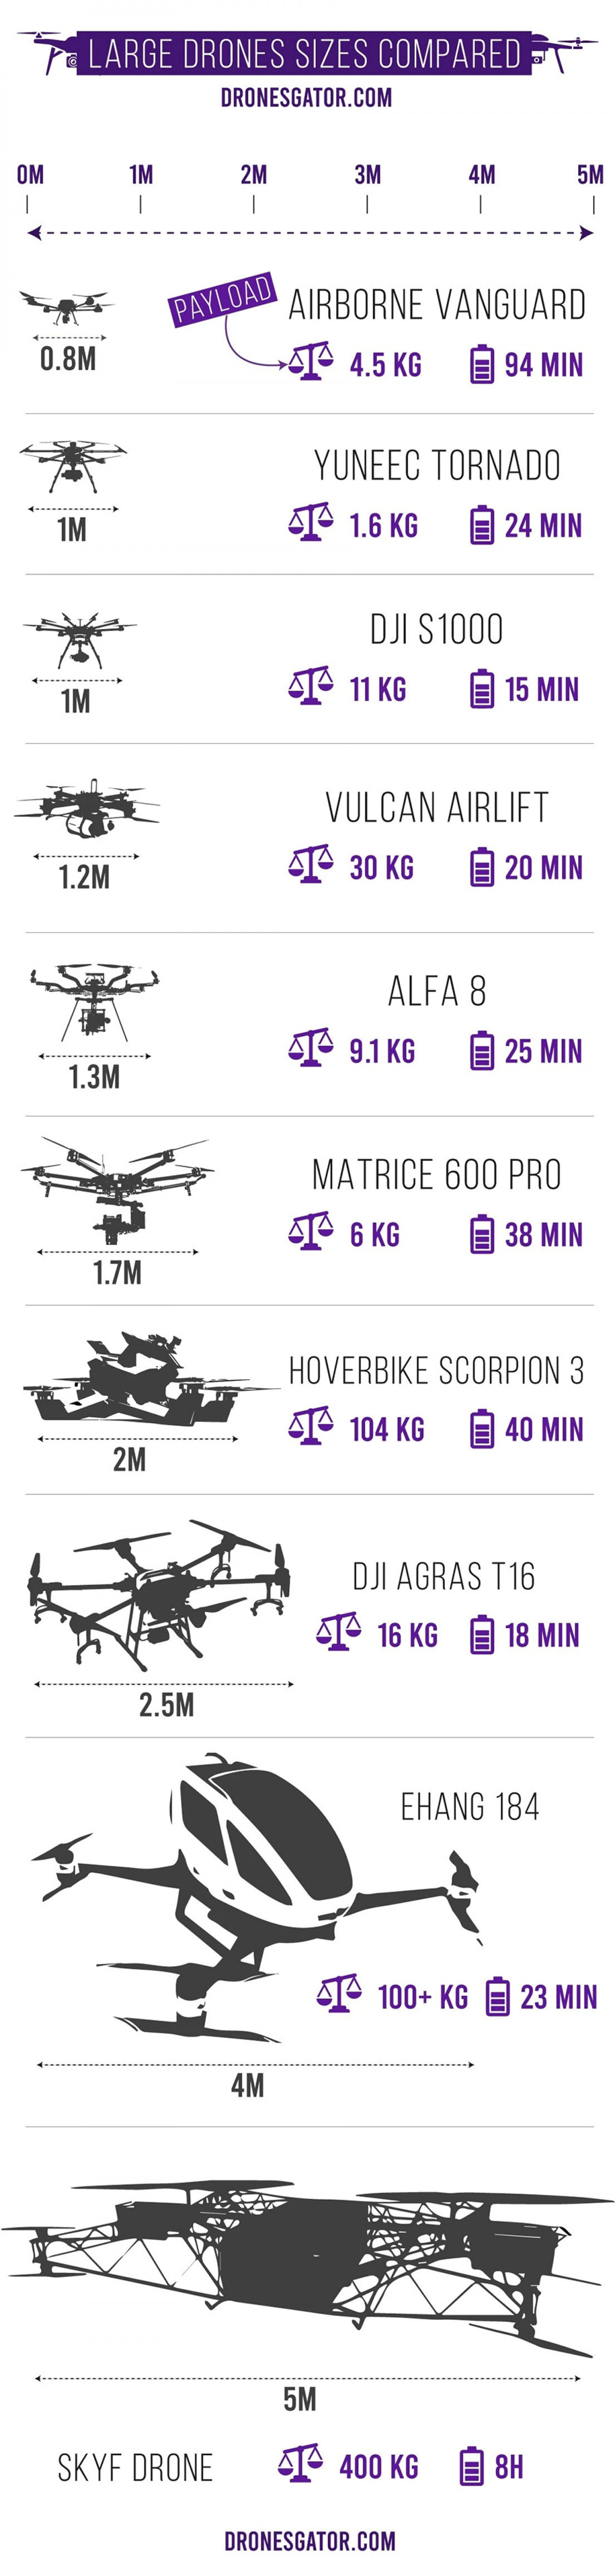 Largest Drones in the World Compared ( And how heavy they can lift) Infographic